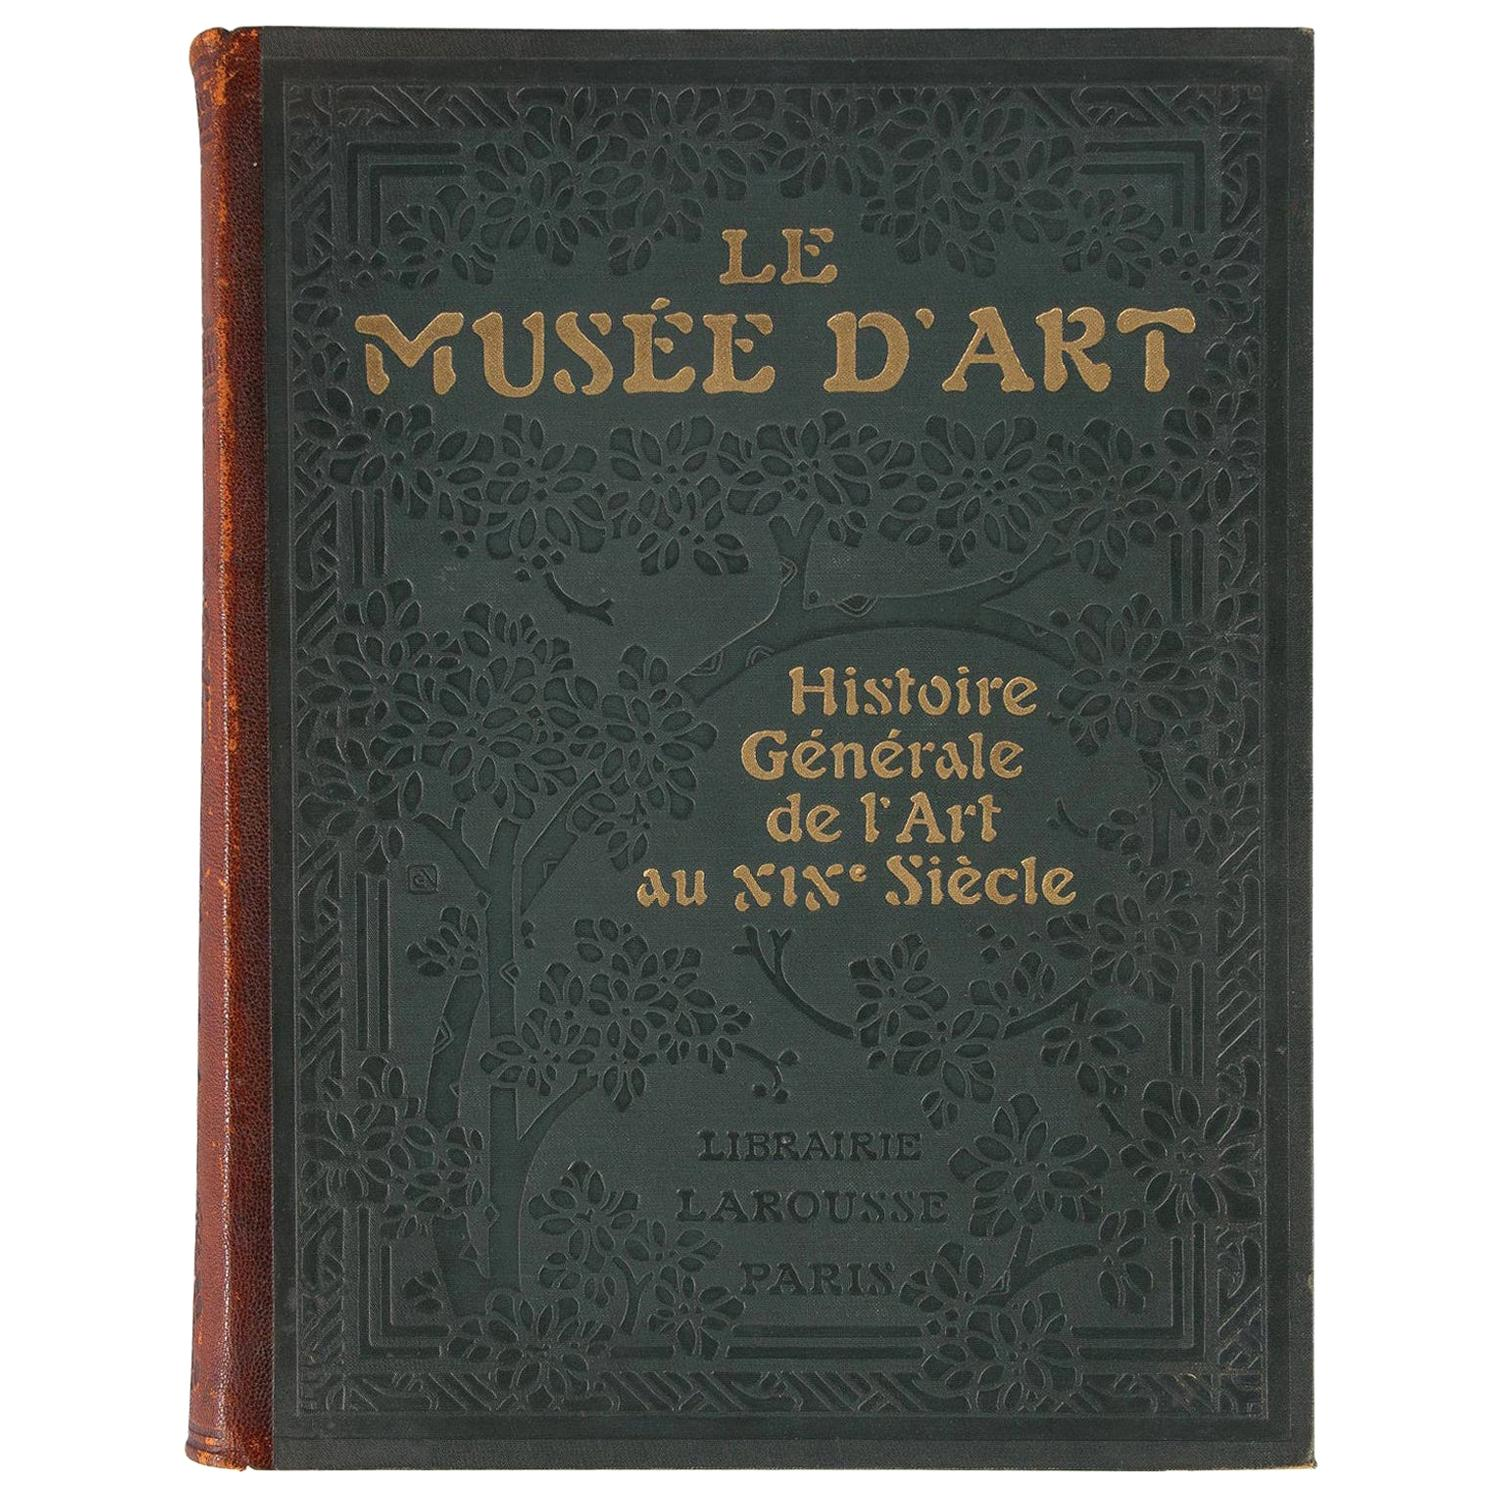 French Book, Le Musee d'Art, 1920s